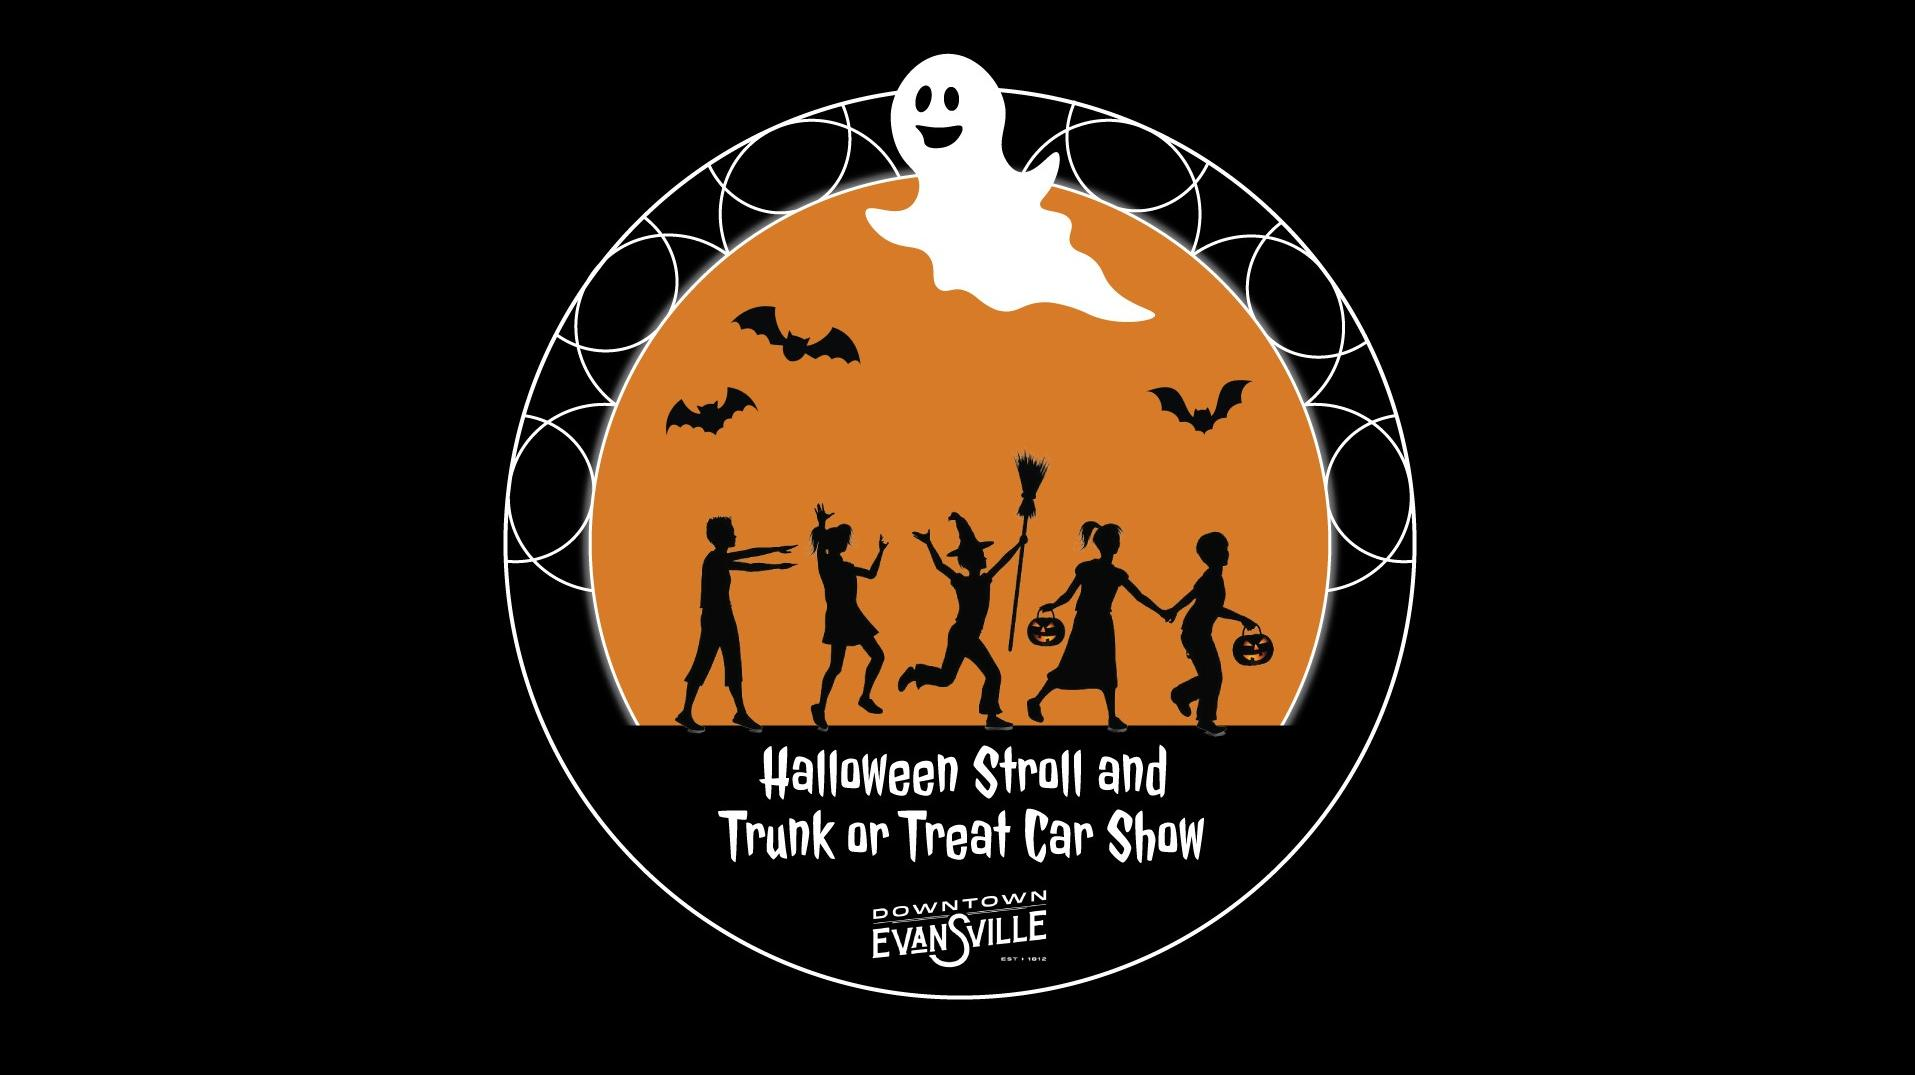 Halloween Stroll Graphic - Copy